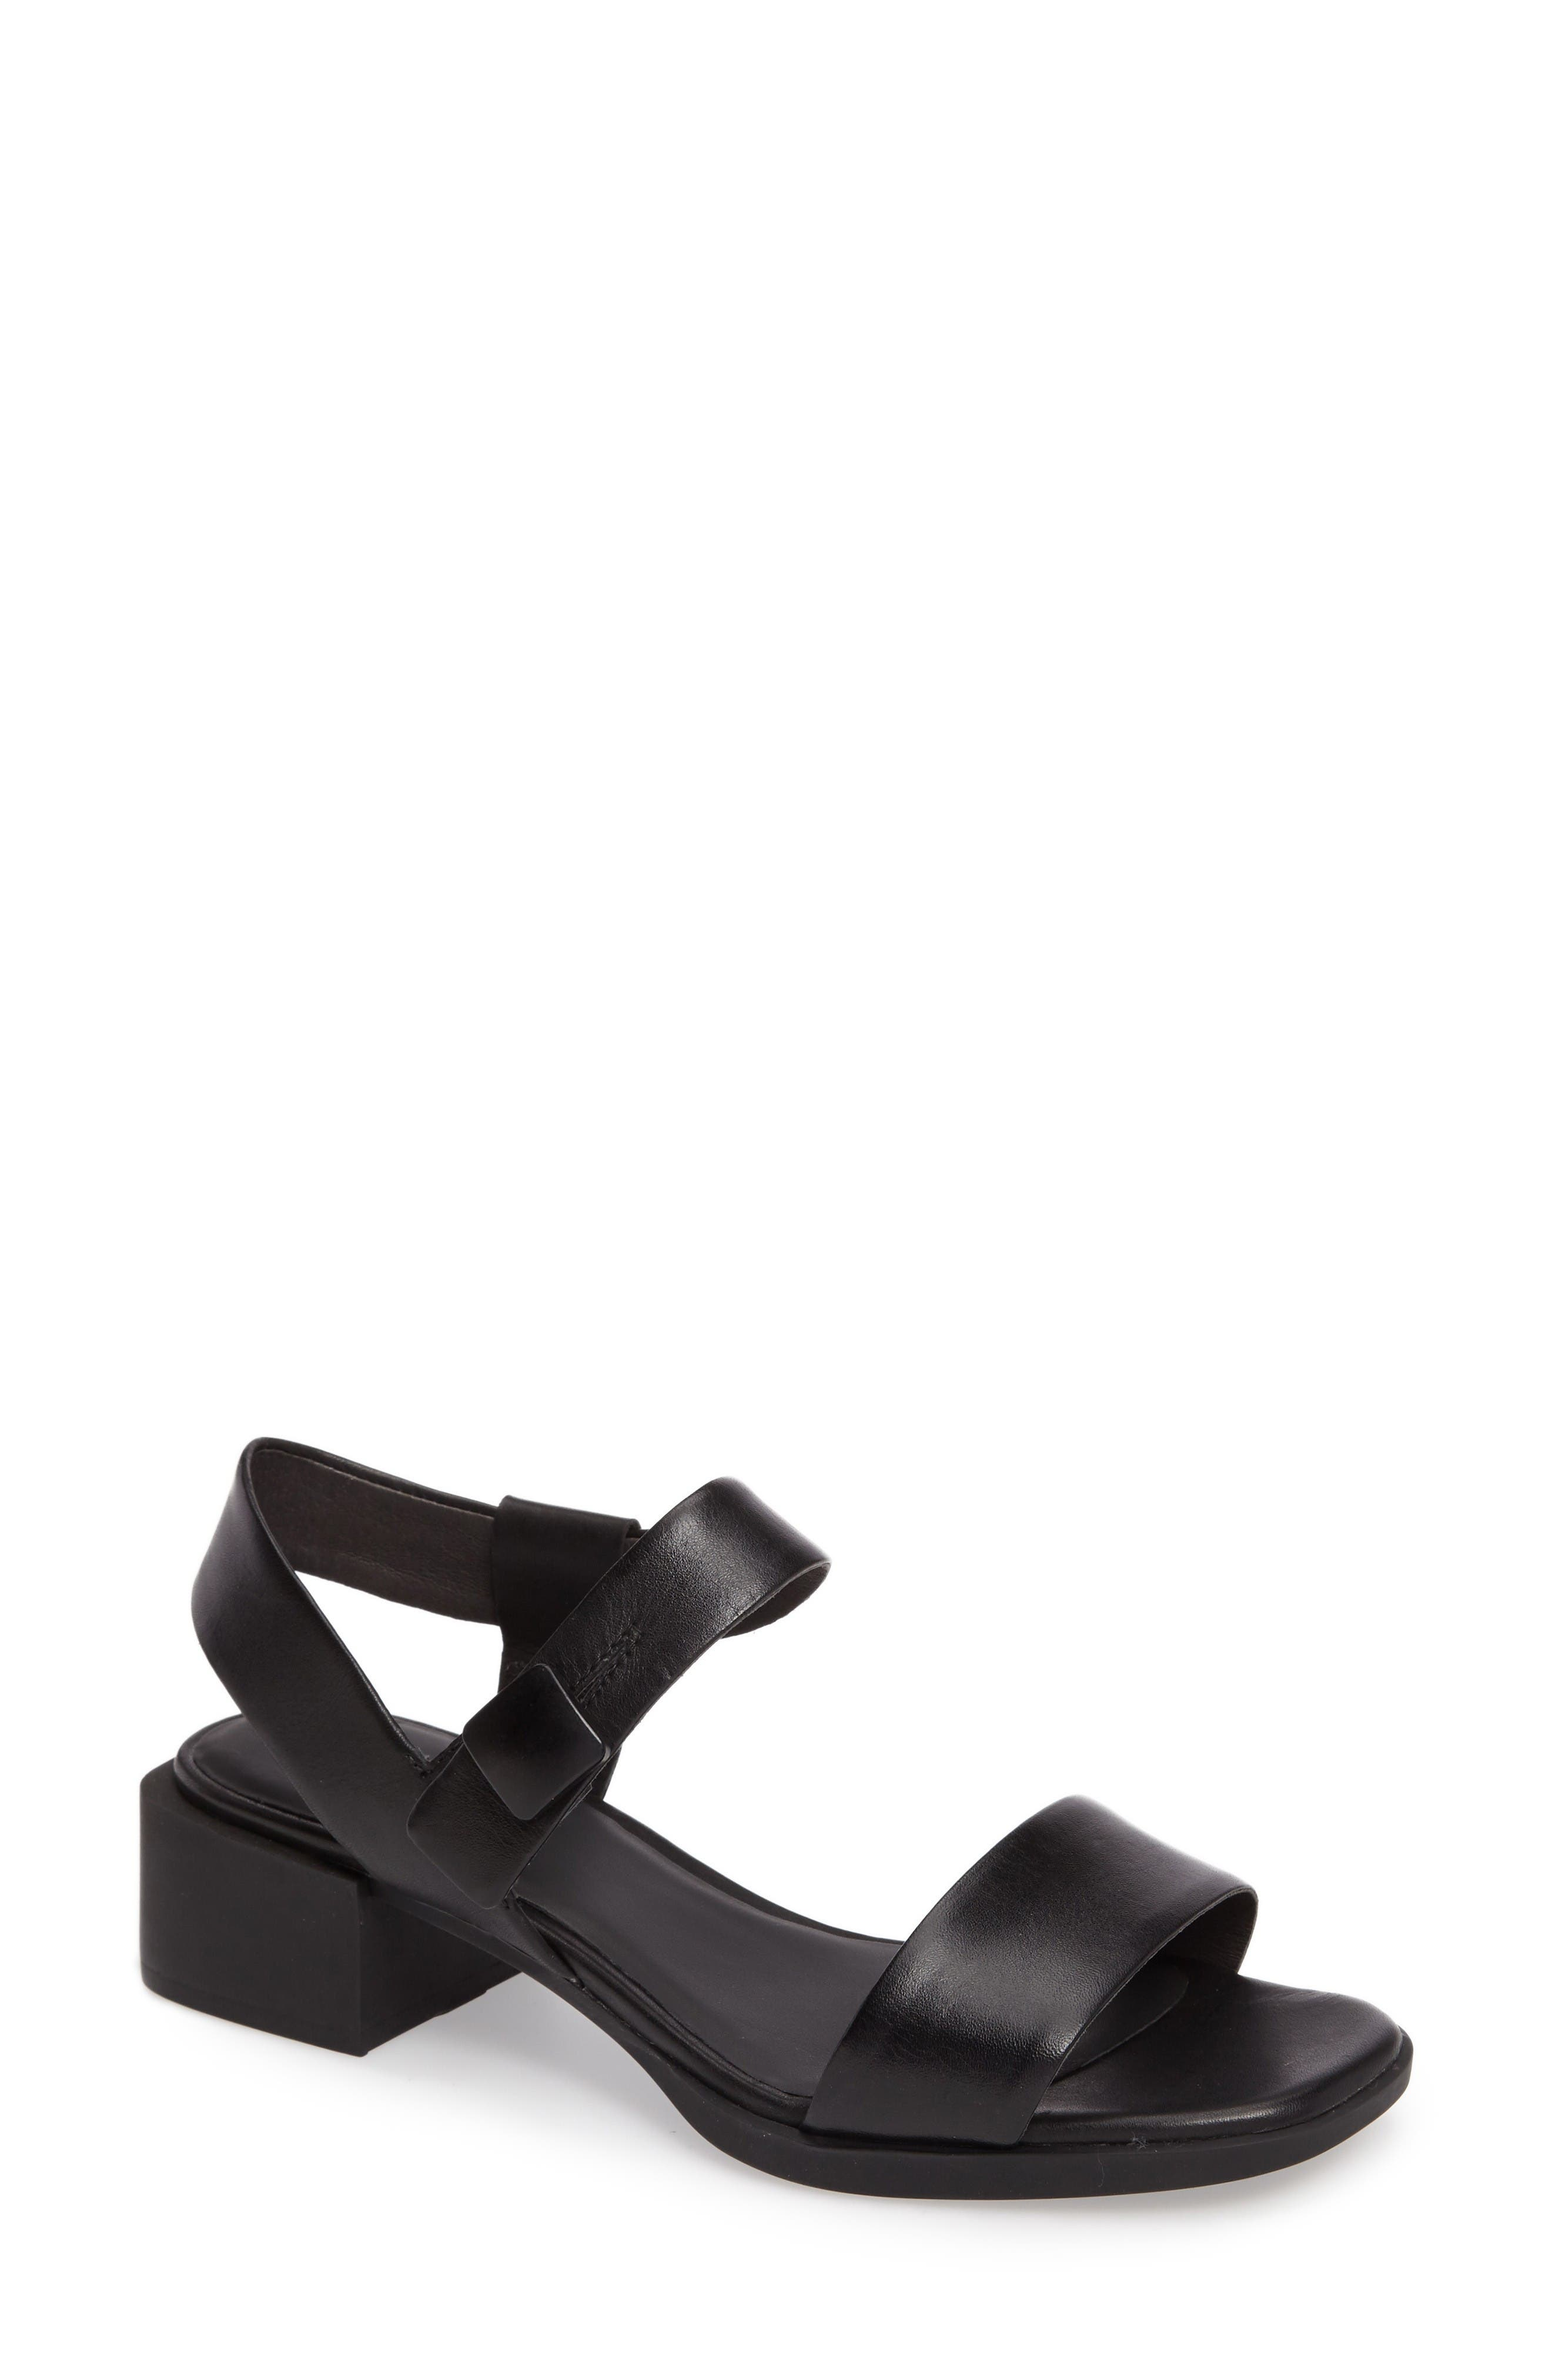 Alternate Image 1 Selected - Camper Kobo Slingback Square Toe Sandal (Women)